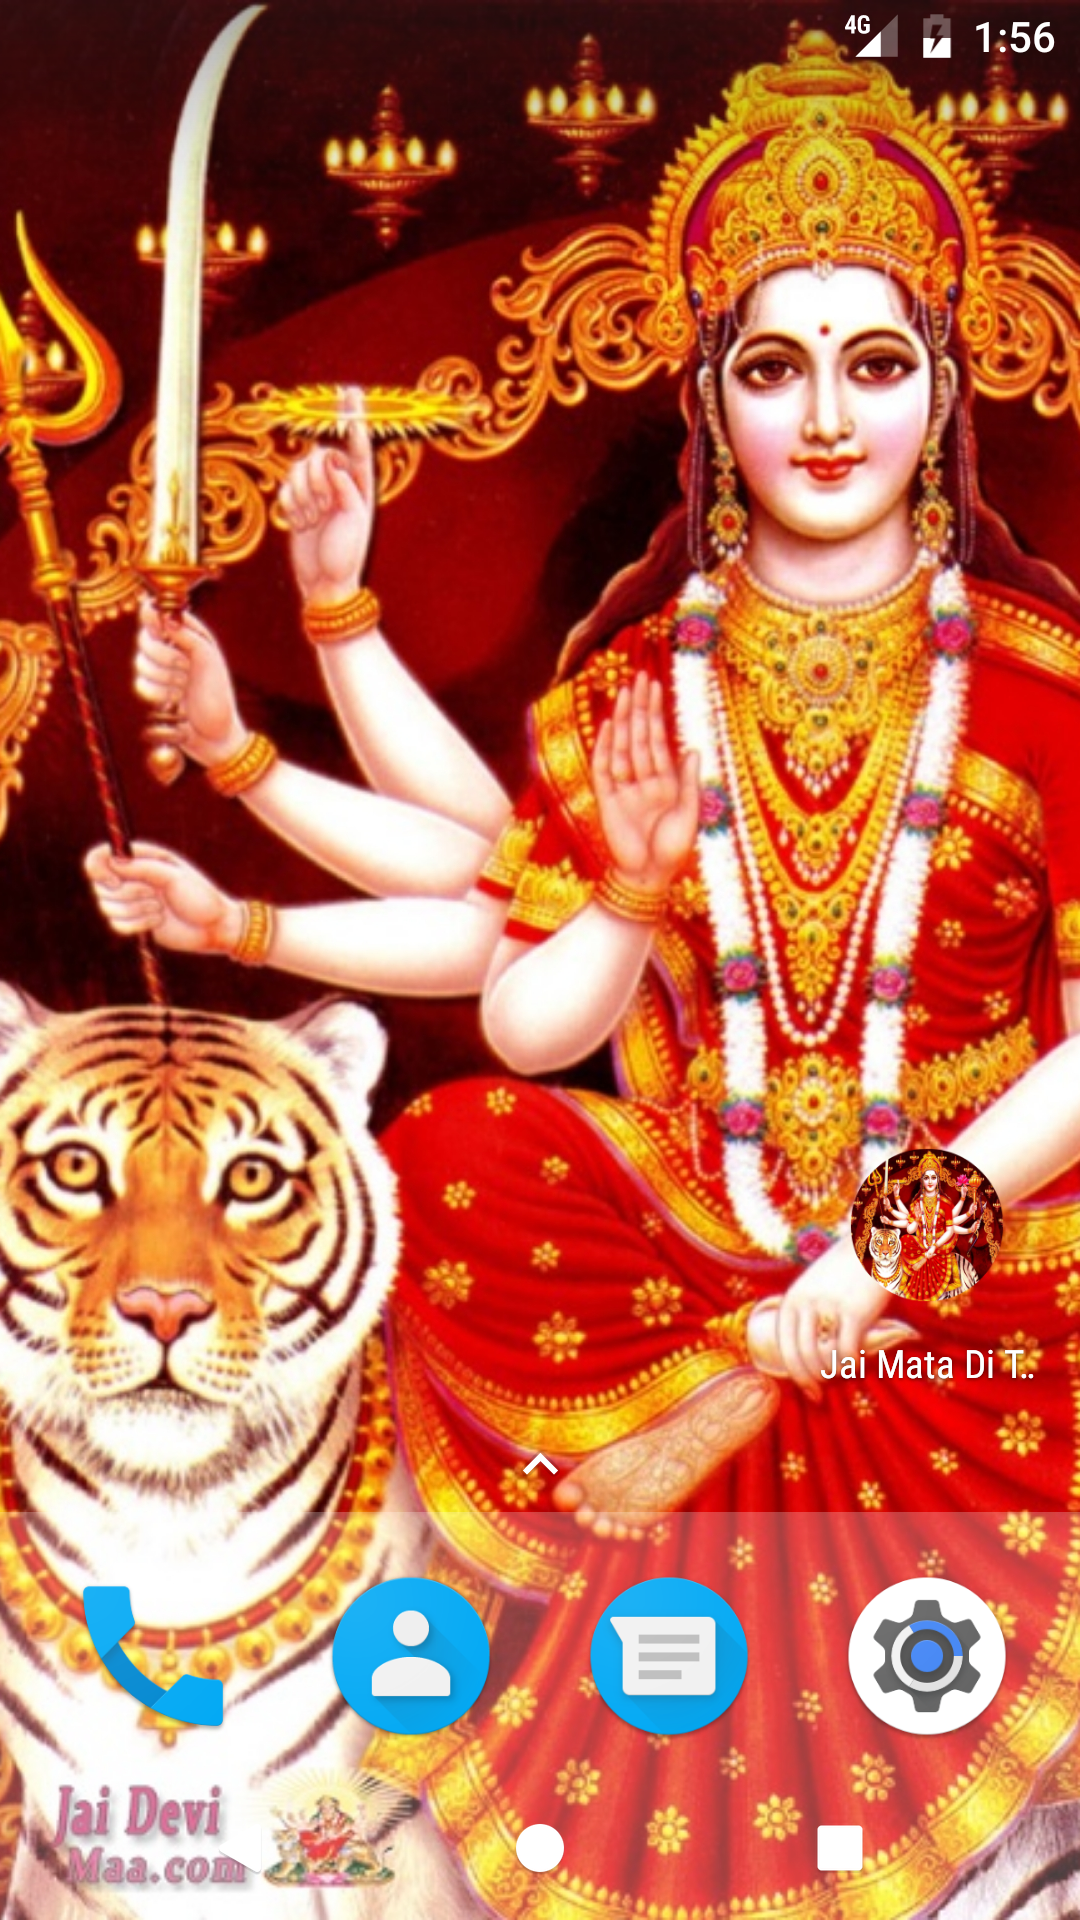 Jai Mata Di Hd Wallpapers Amazonfr Appstore Pour Android